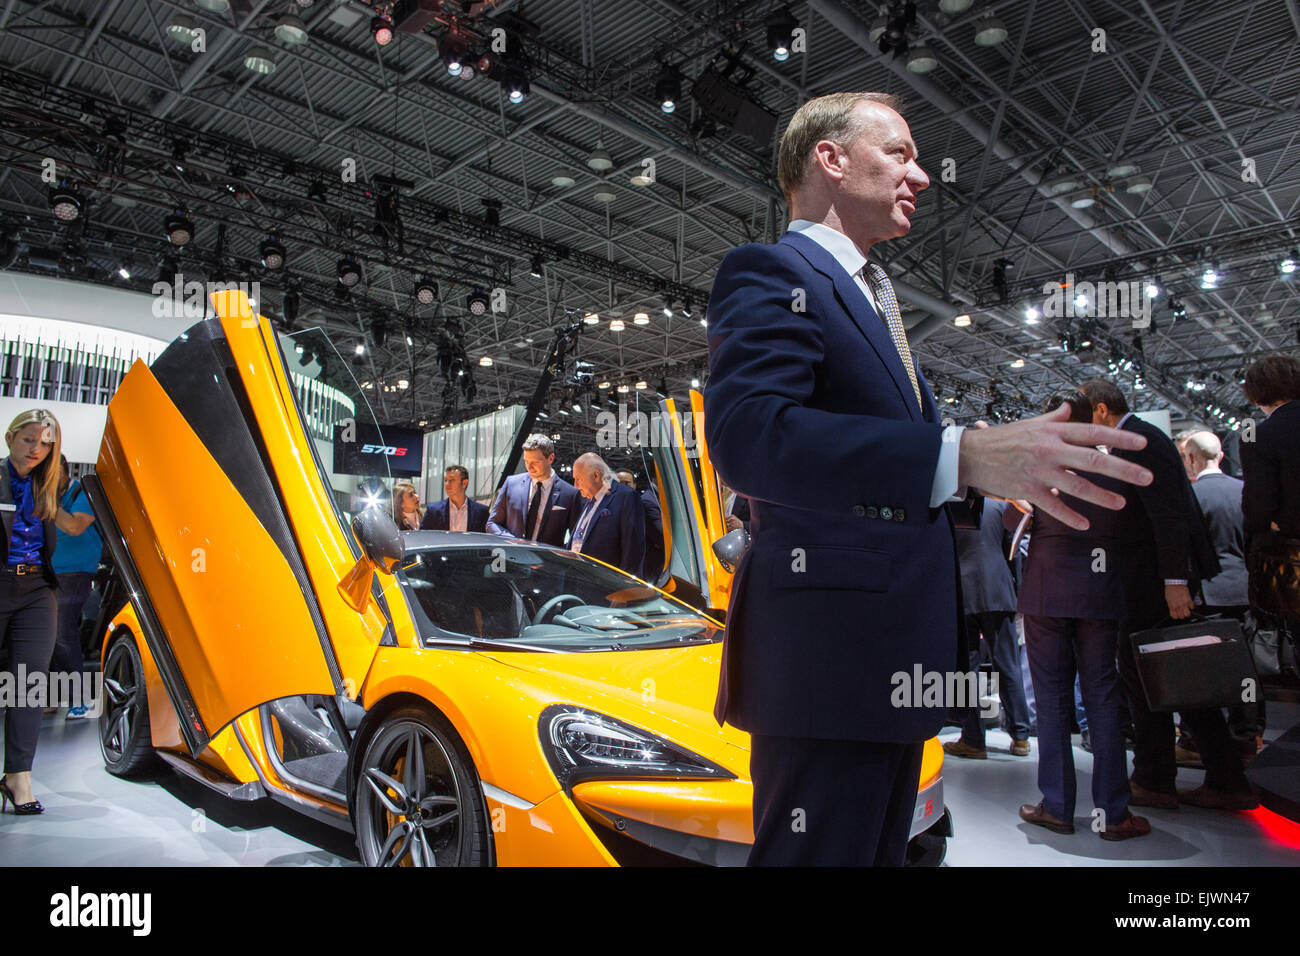 New York, NY - 1 April 2015. British carmaker McLaren's CEO Mike Flewitt talks to reporters about its entry - Stock Image